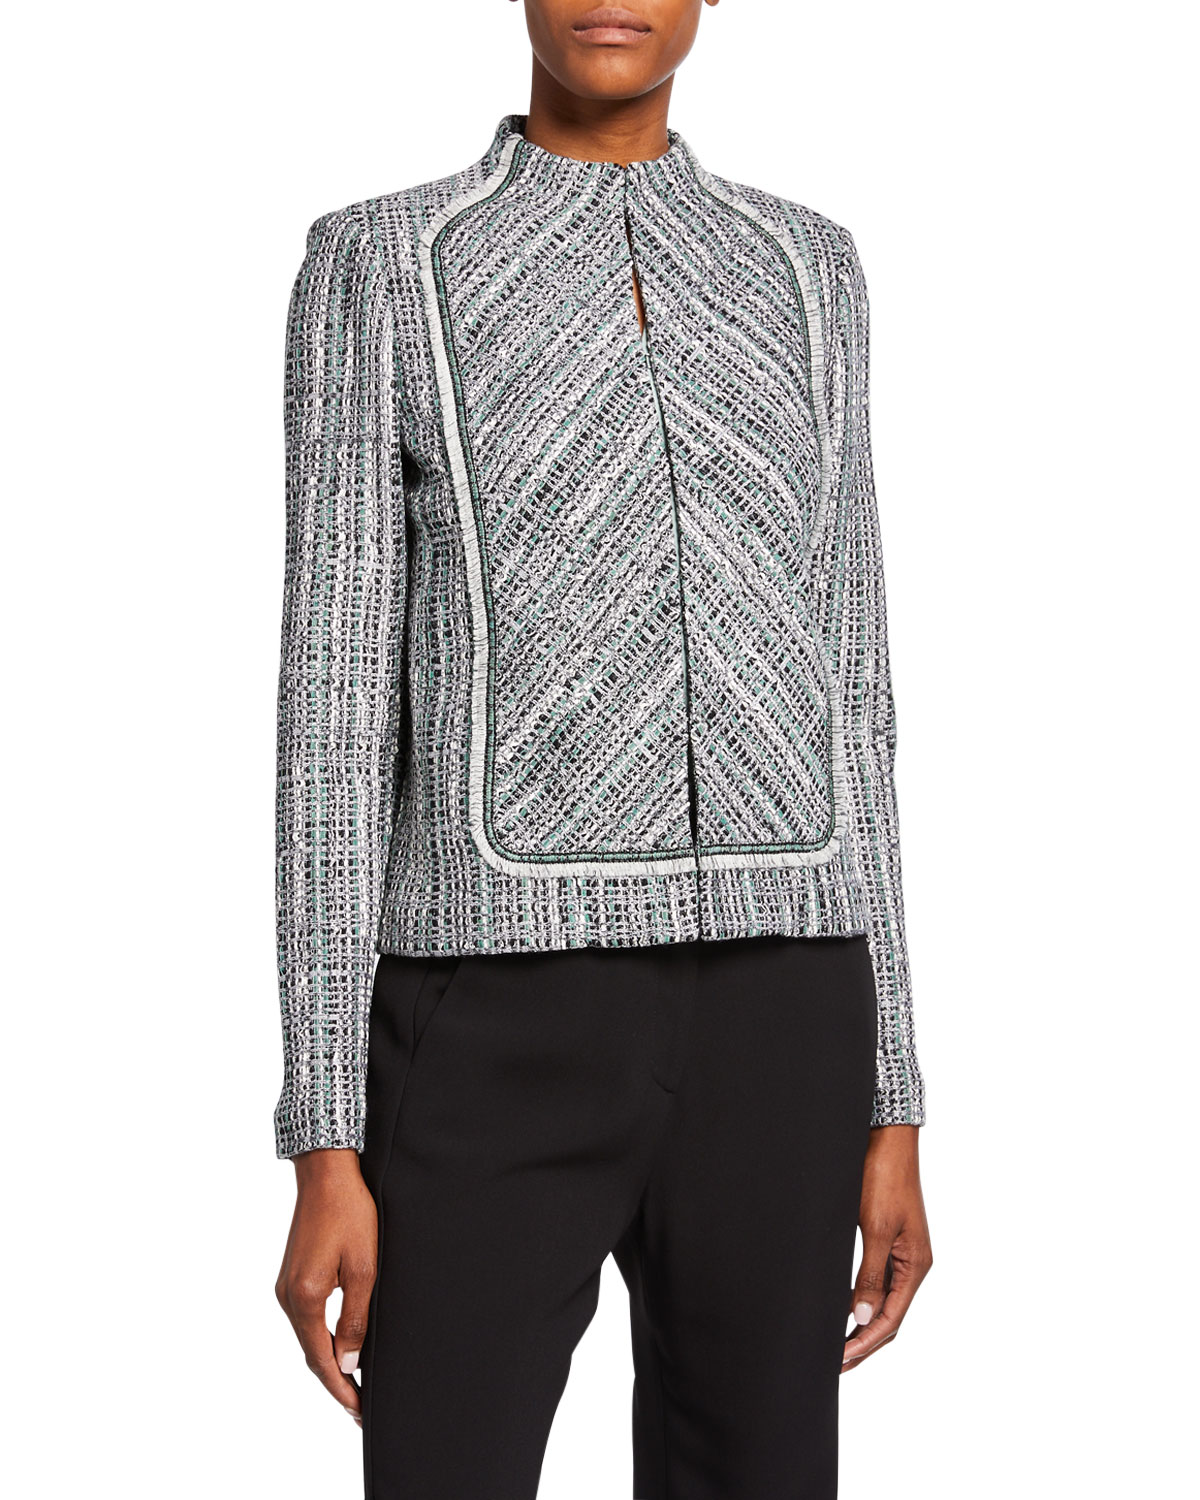 St. John Collection Ribbon Textured Inlay Jacket with Bib & Fringe Trim